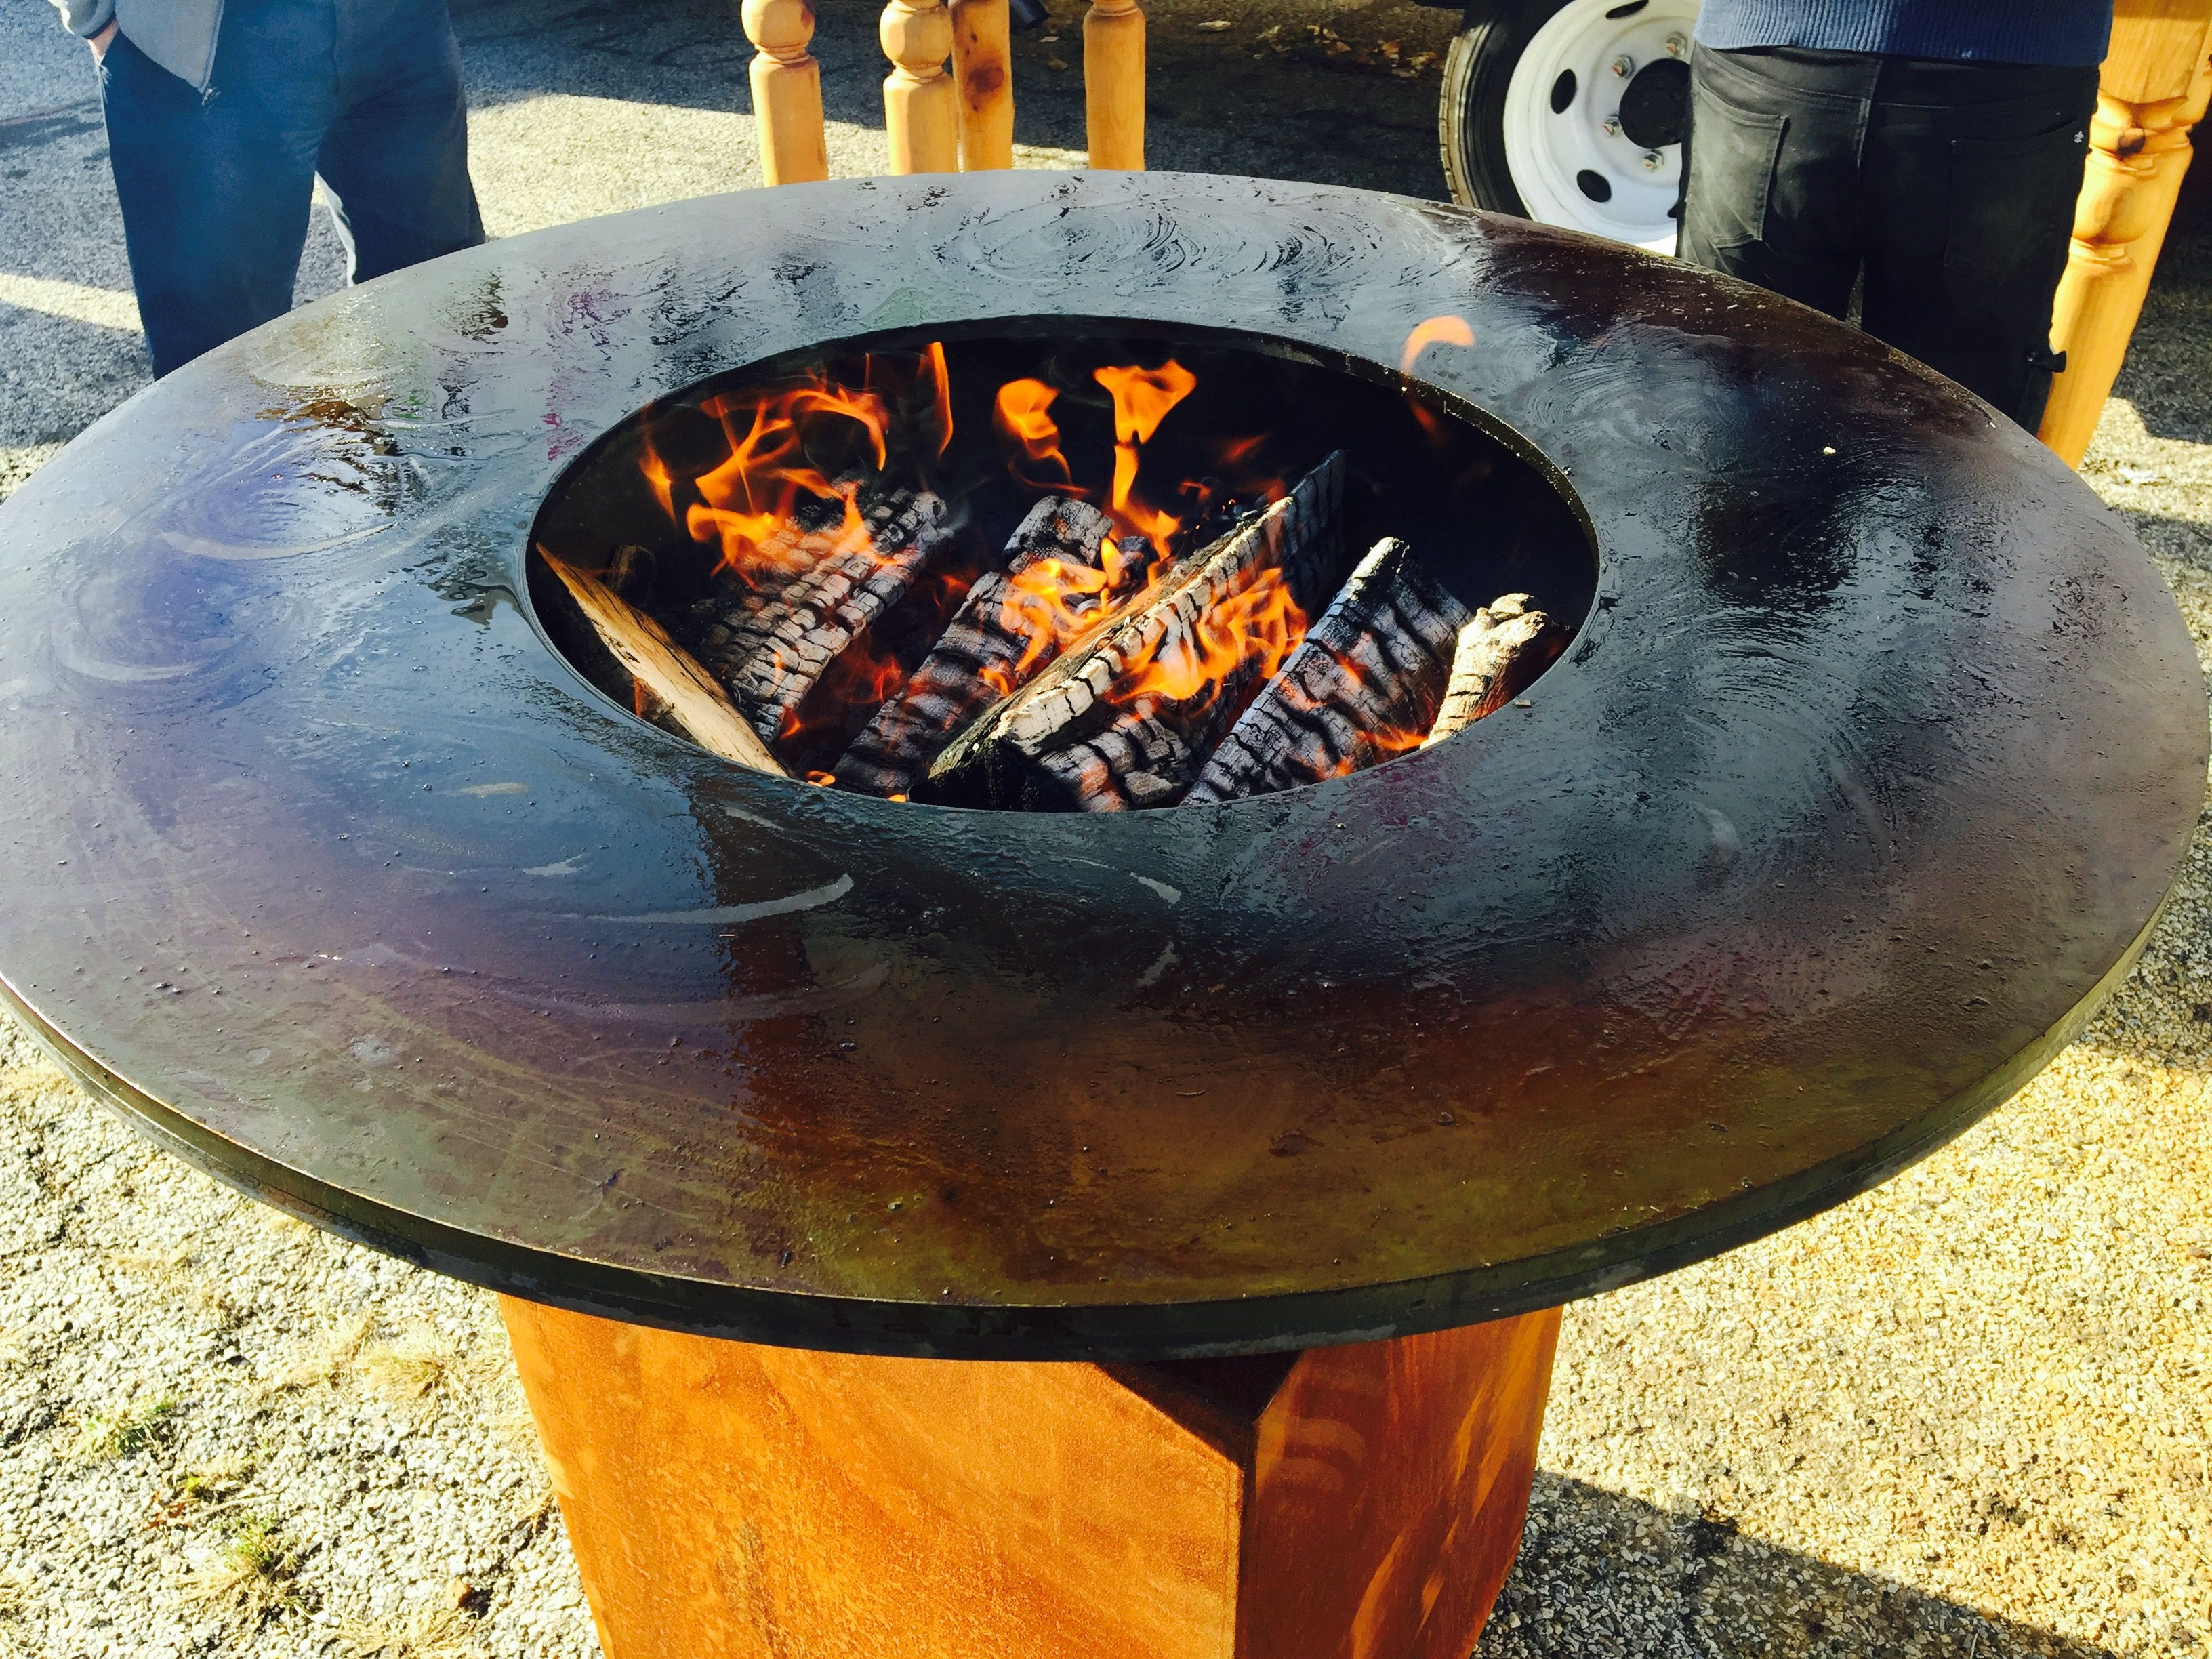 Ofyr Wood Burning Grill Available For Rent In The